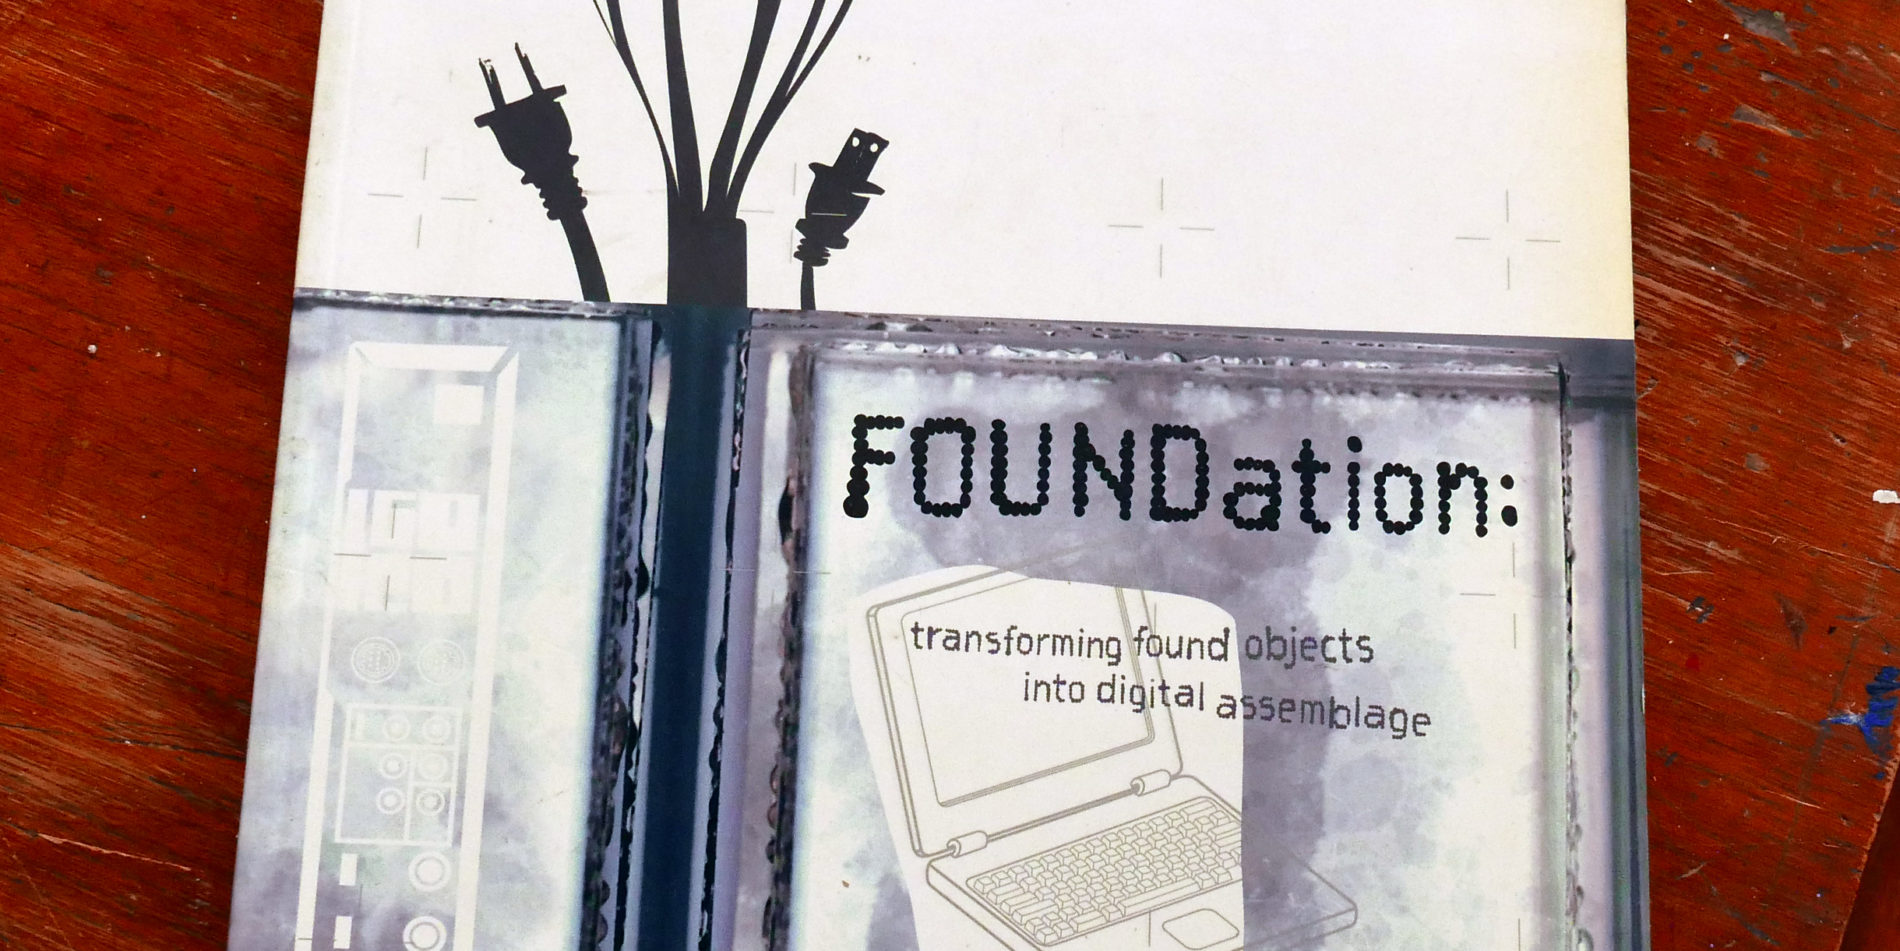 Foundation: Transforming Found Objects